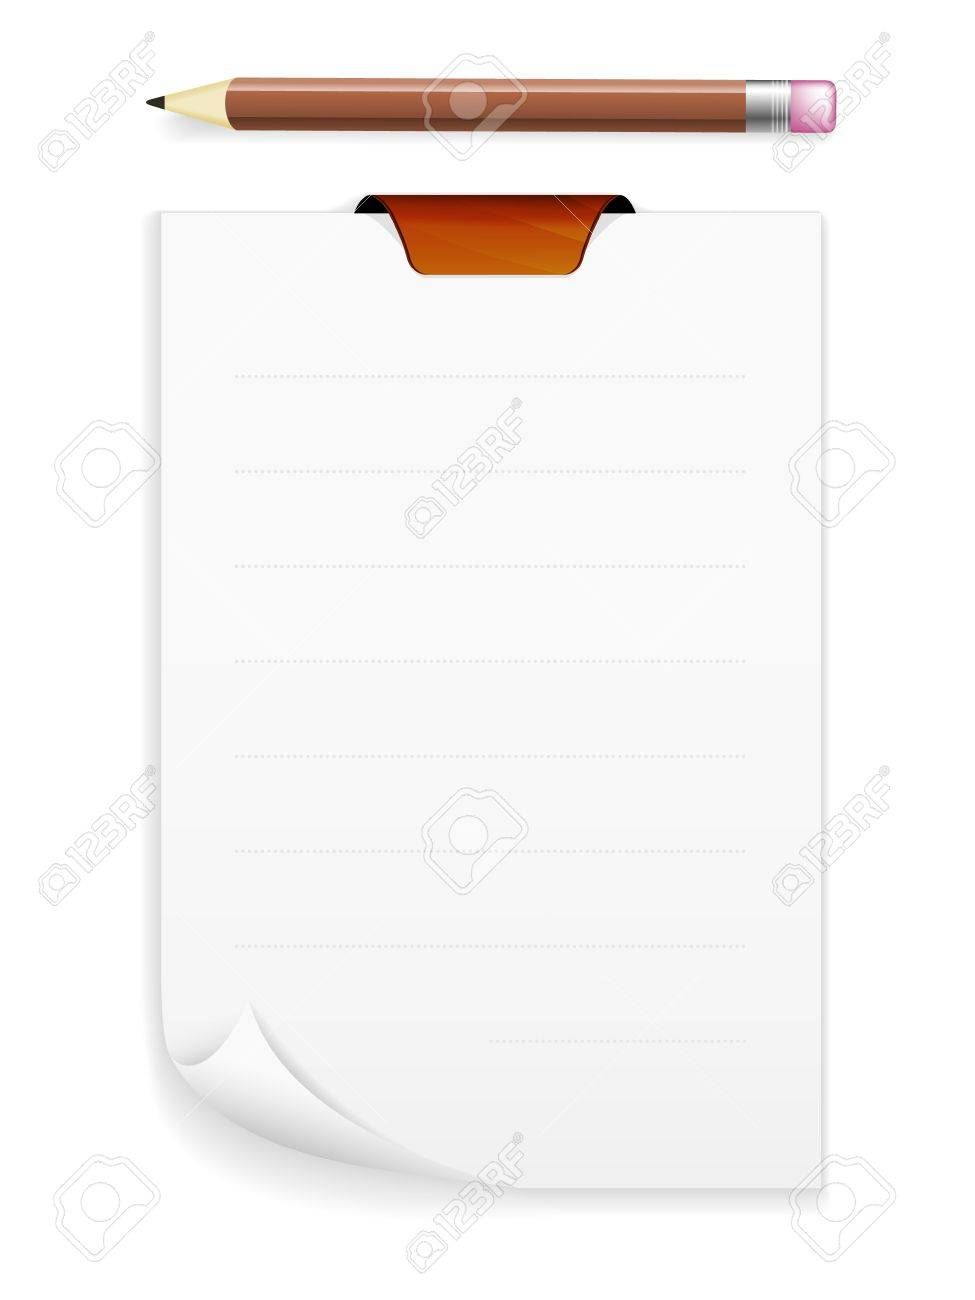 The note board with blank piece of paper and pencil   The noteboard with a pencil Stock Vector - 20197923